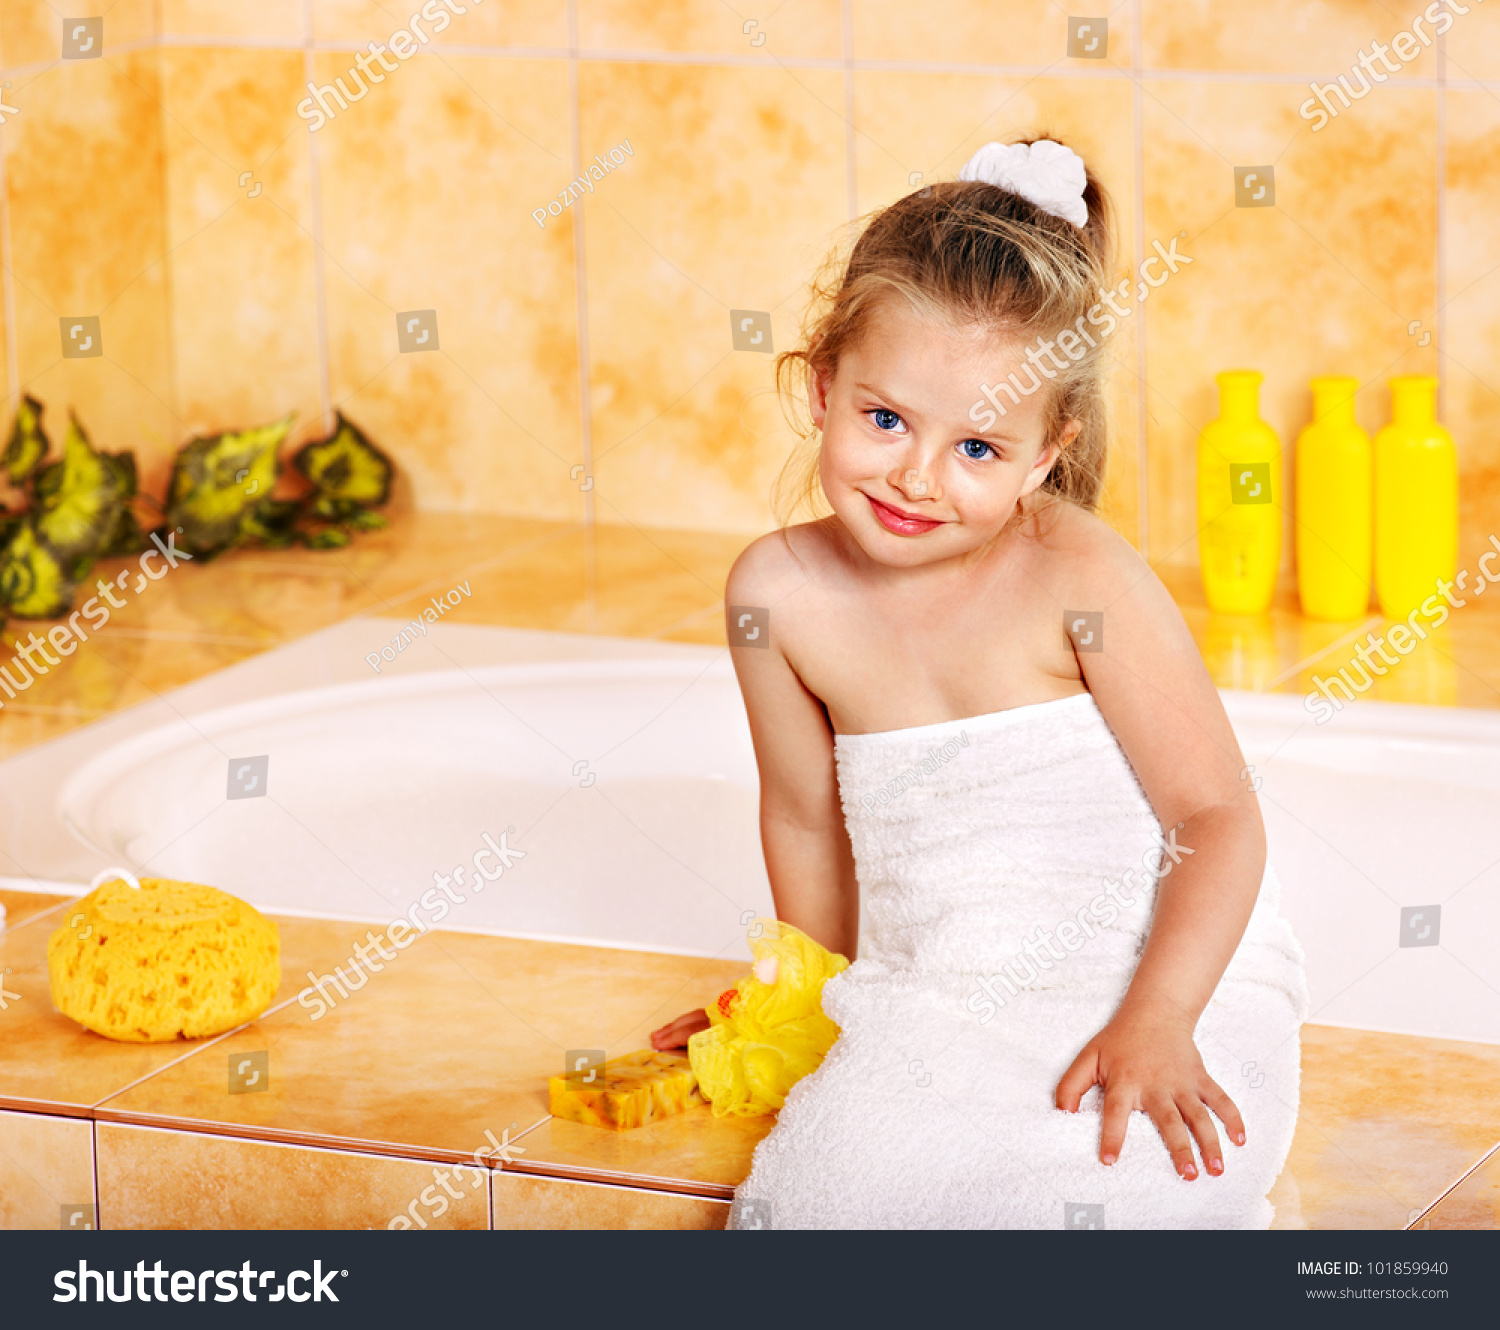 Bathroom Pic Girl: Little Girl In Bathroom. Stock Photo 101859940 : Shutterstock